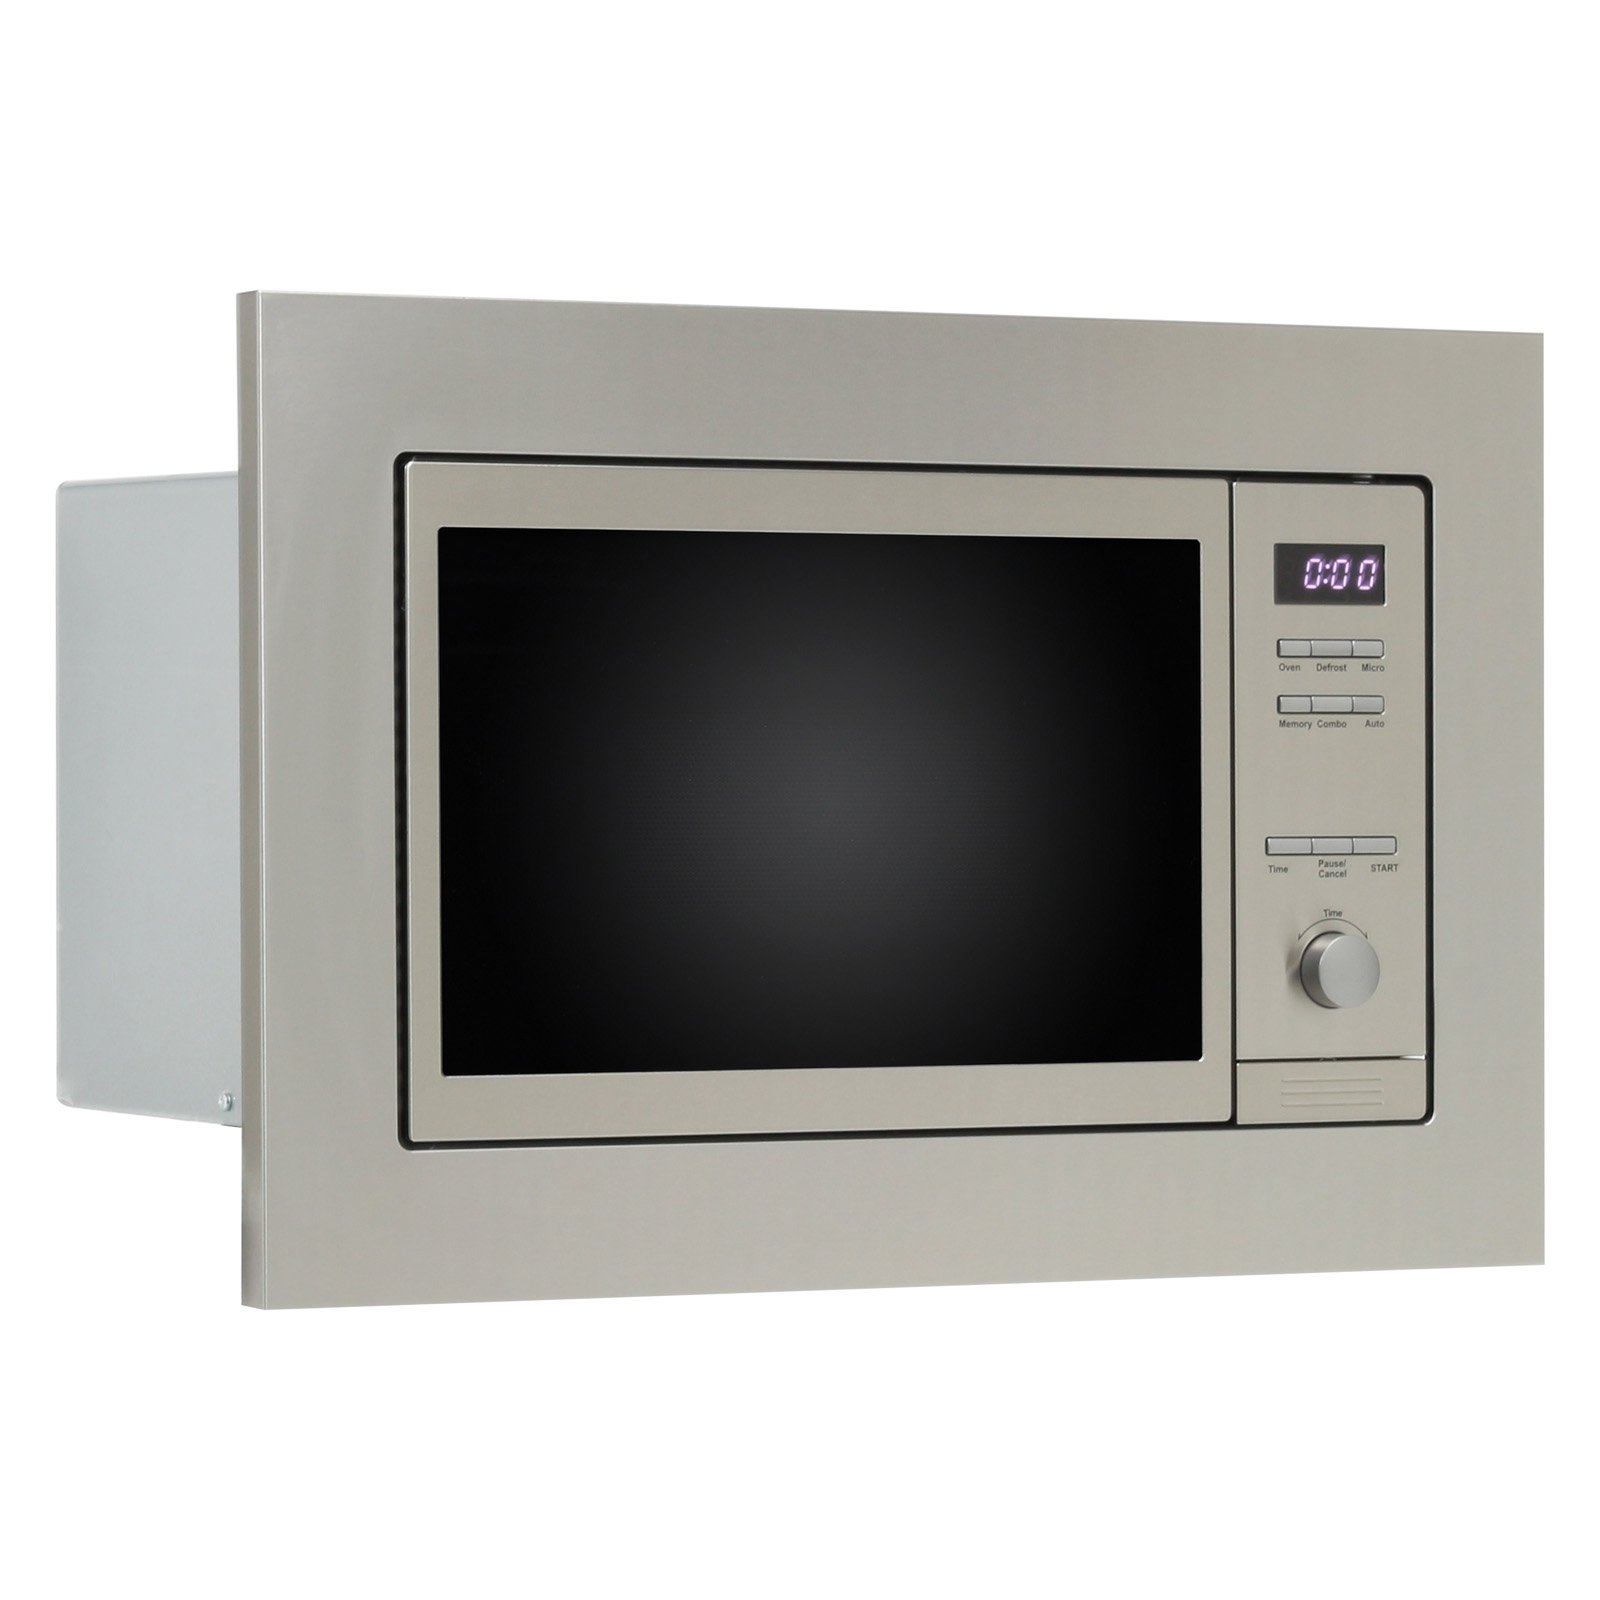 Equator Deco CMO 800 Stainless Steel 0.8 cu. ft. Built-In Microwave